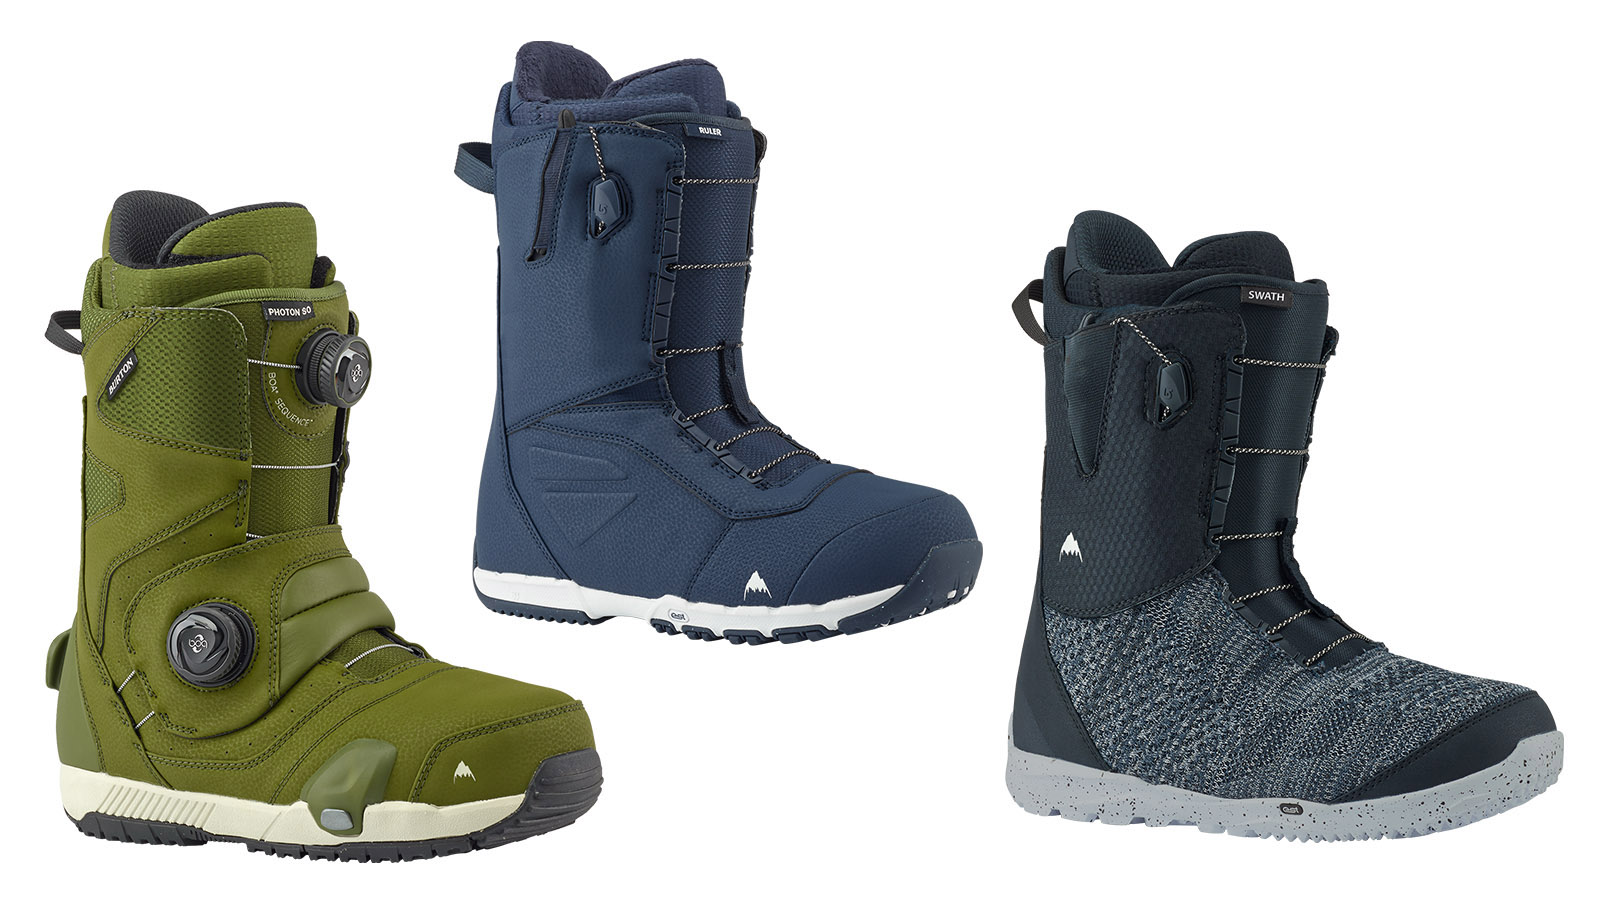 b40857d4bba4 Burton Snowboard Boots FW18 19 Preview - Boardsport SOURCE